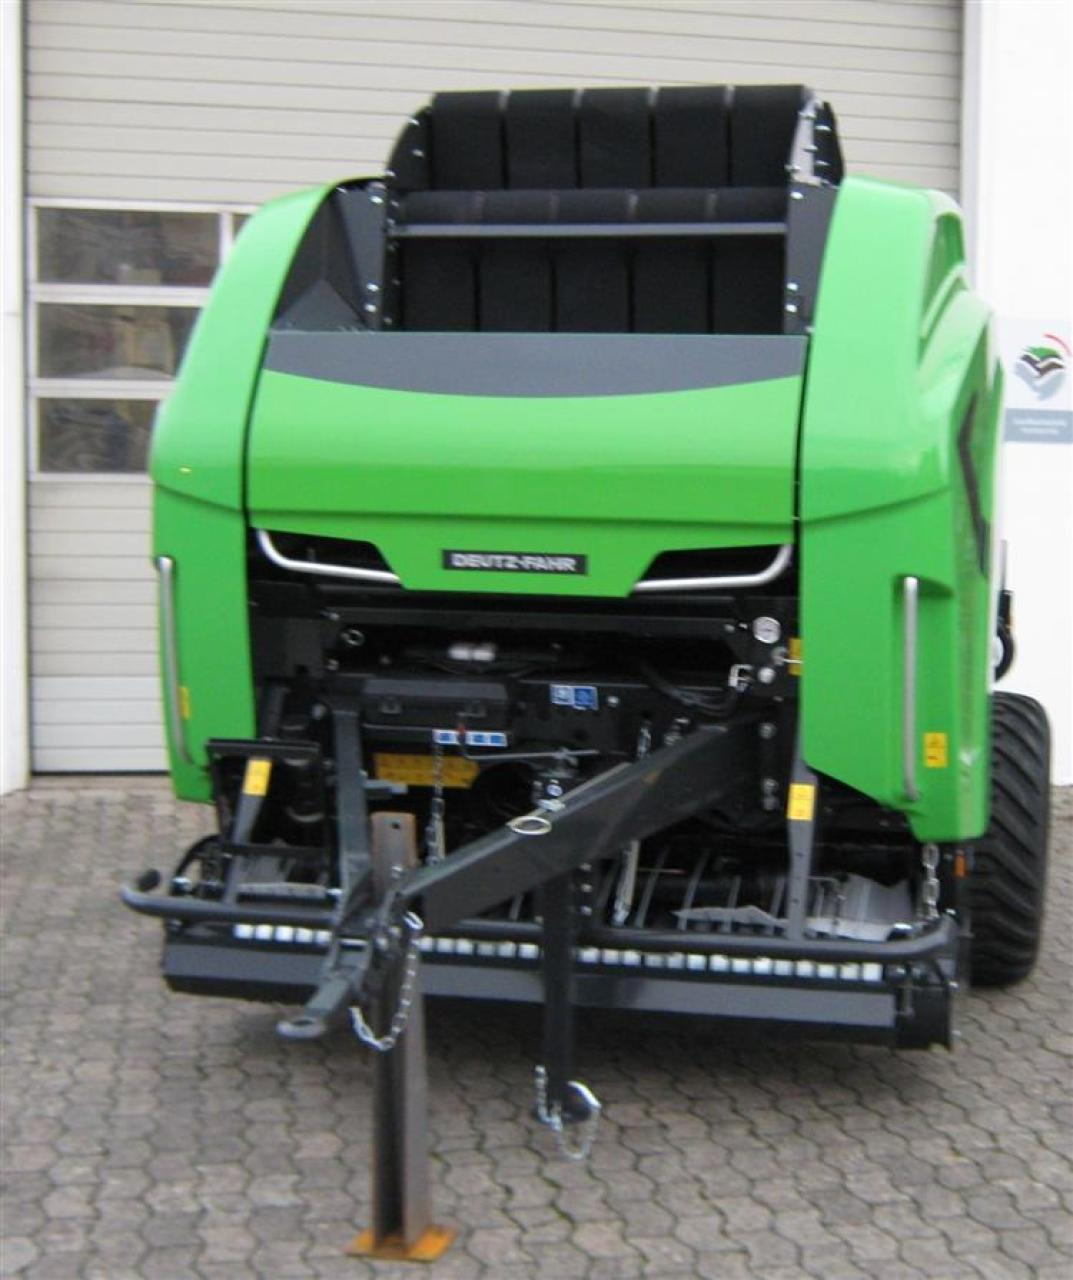 Deutz-Fahr VM 790Opticut